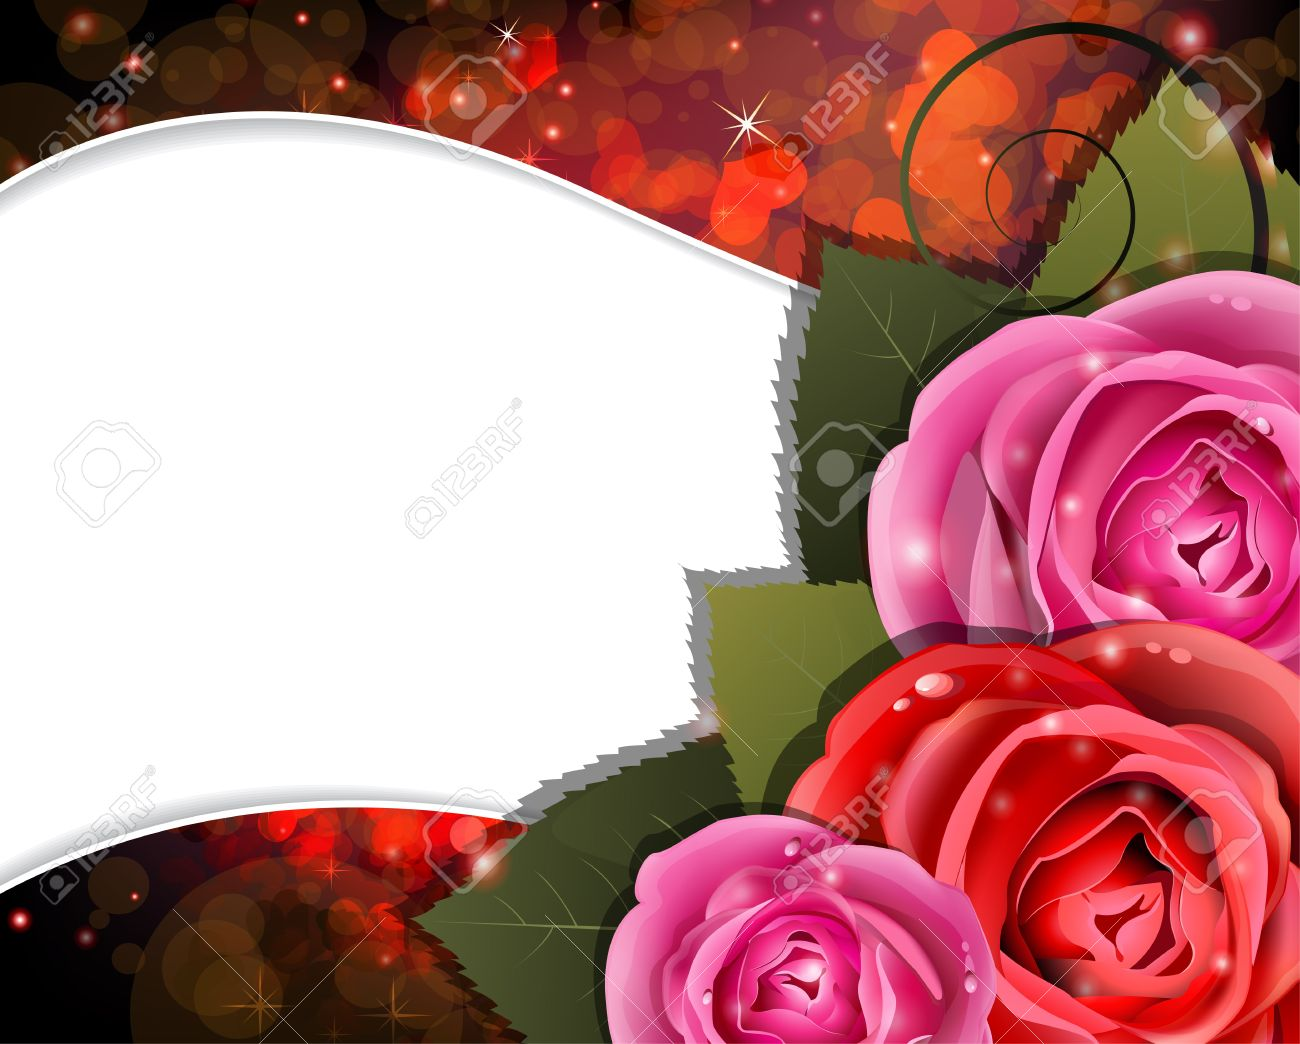 Roses on a red background with transparent hearts  Valentines Day card Stock Vector - 17529223